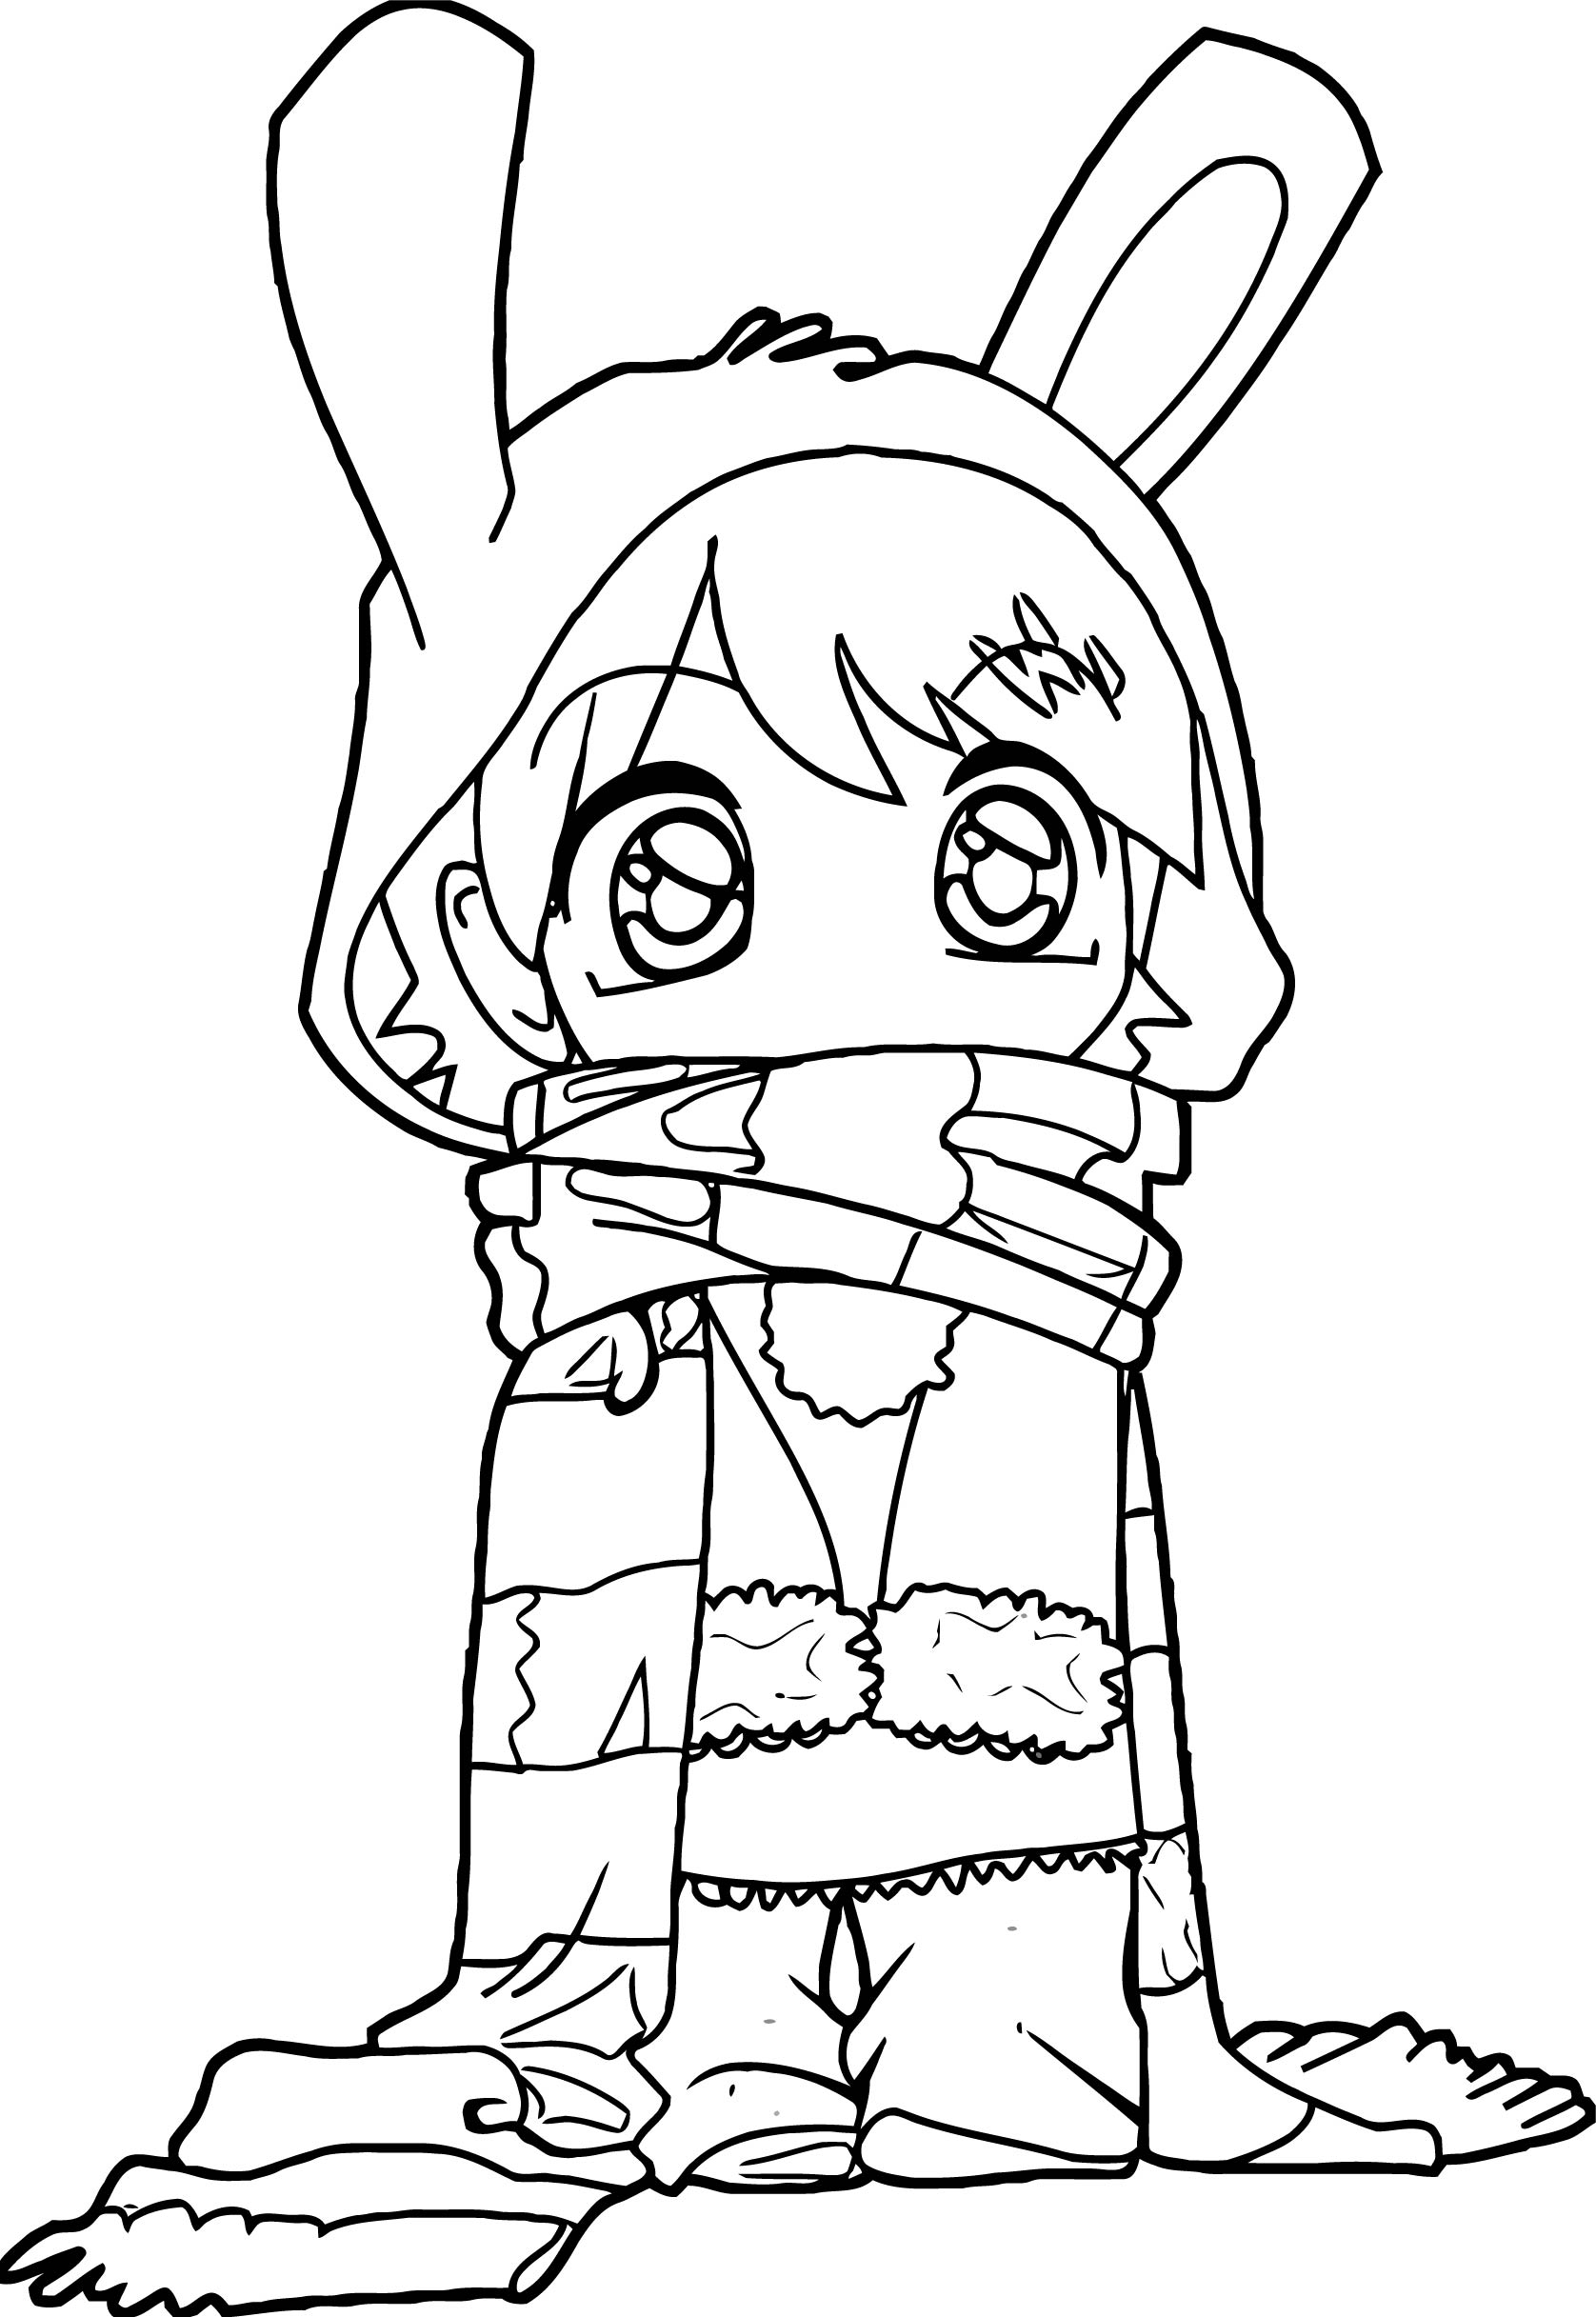 Manga Cute Bunny Girl Cartoon Coloring Page